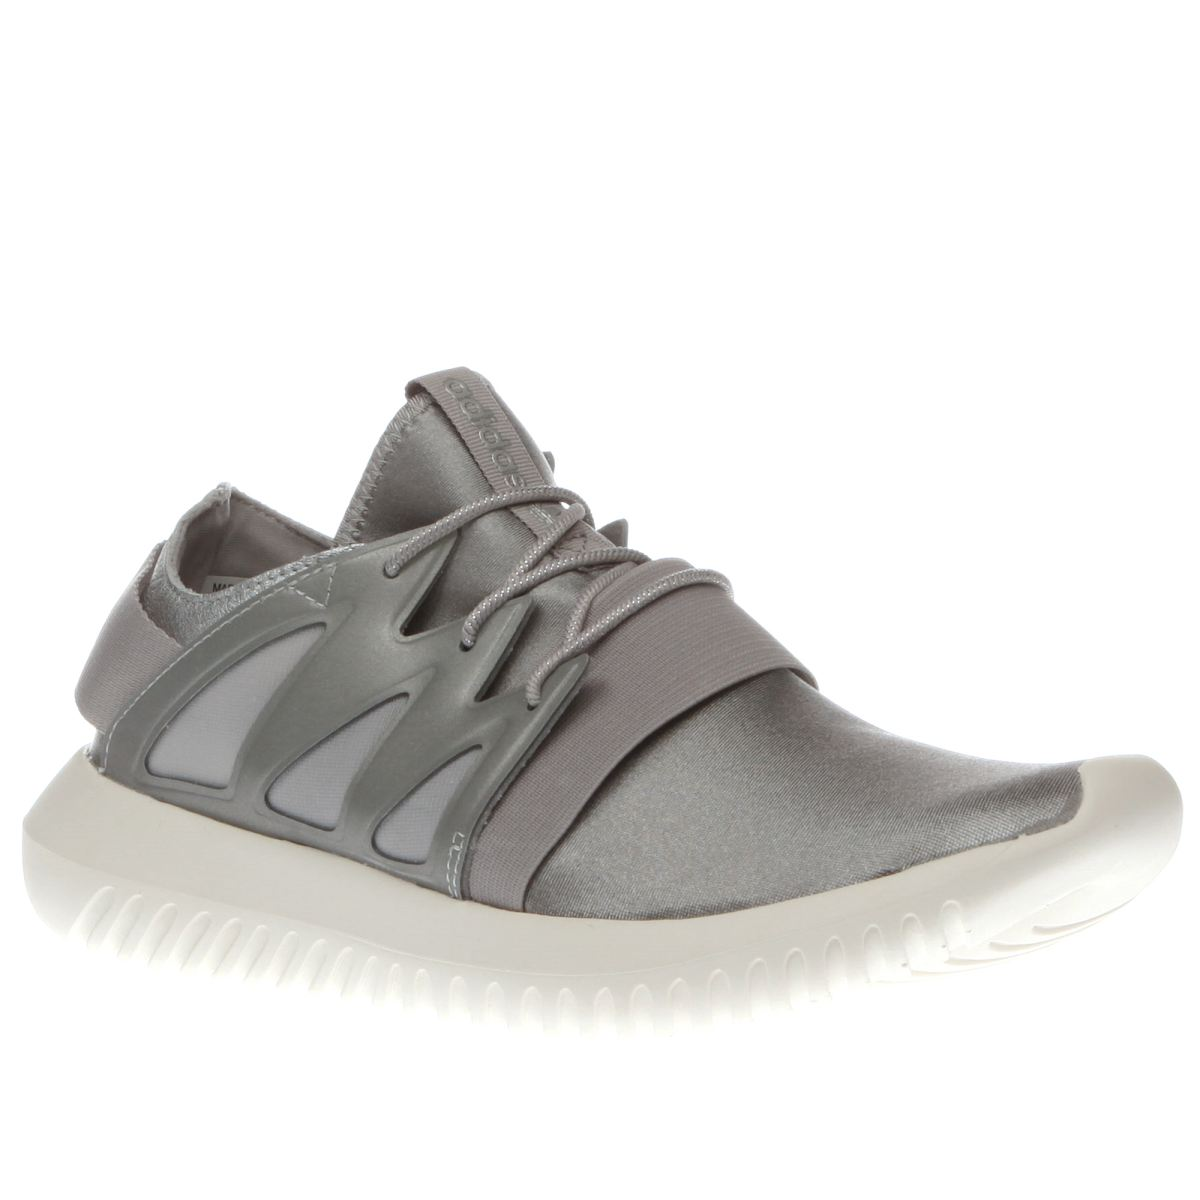 grey and yellow adidas trainers for kids